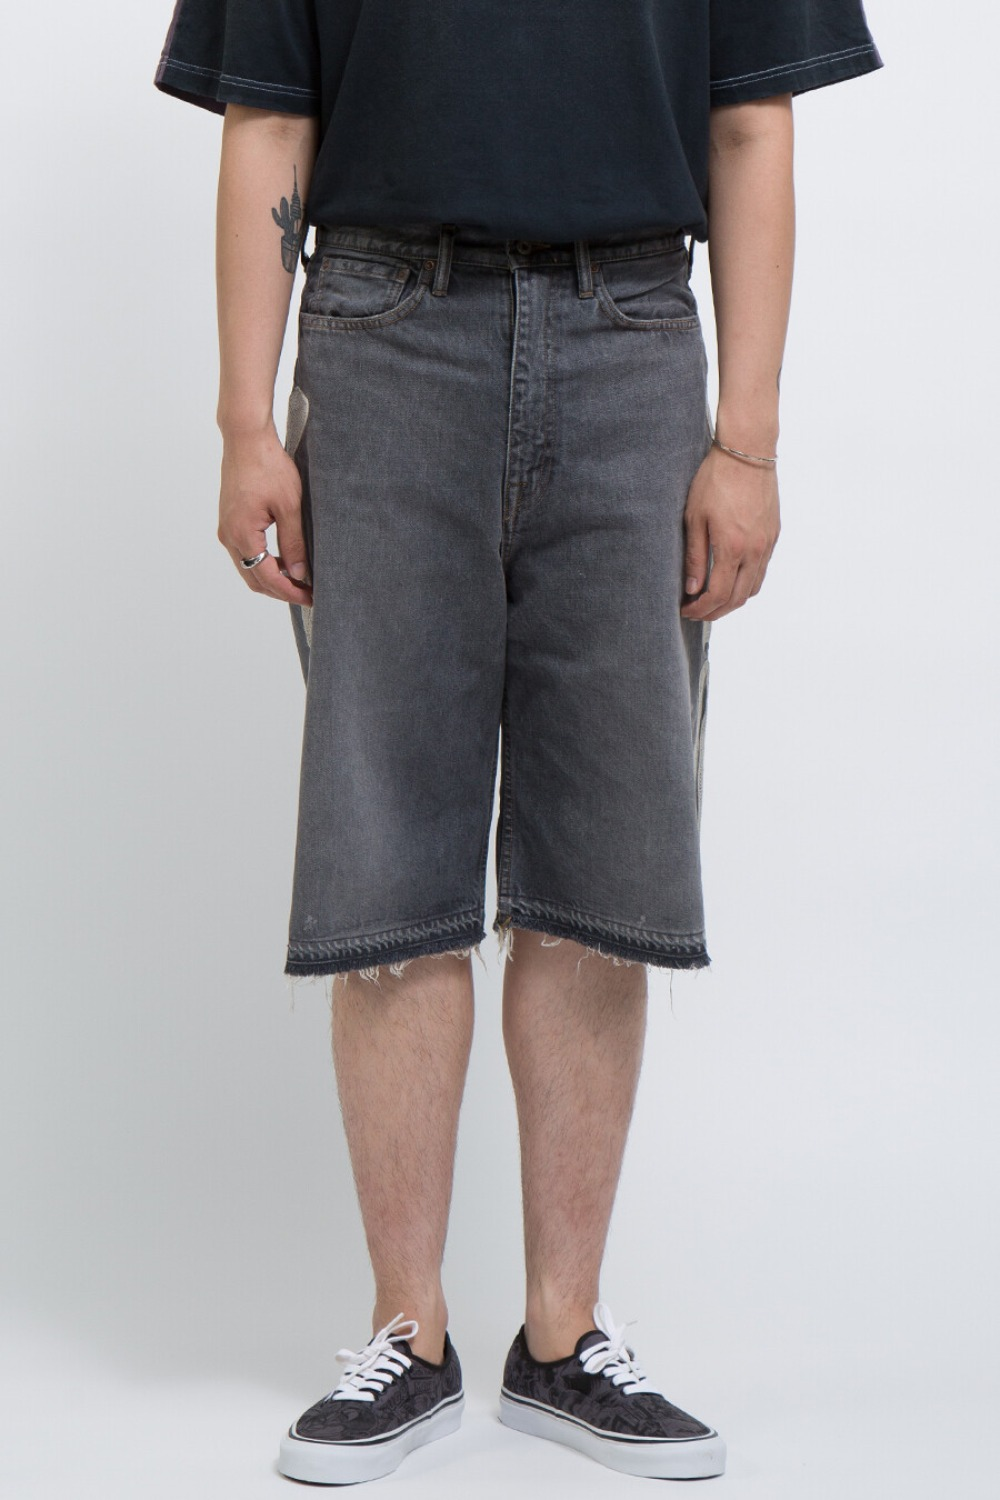 14OZ BLACK DENIM 5P SHORT PANTS(BONE EMBROIDERY)